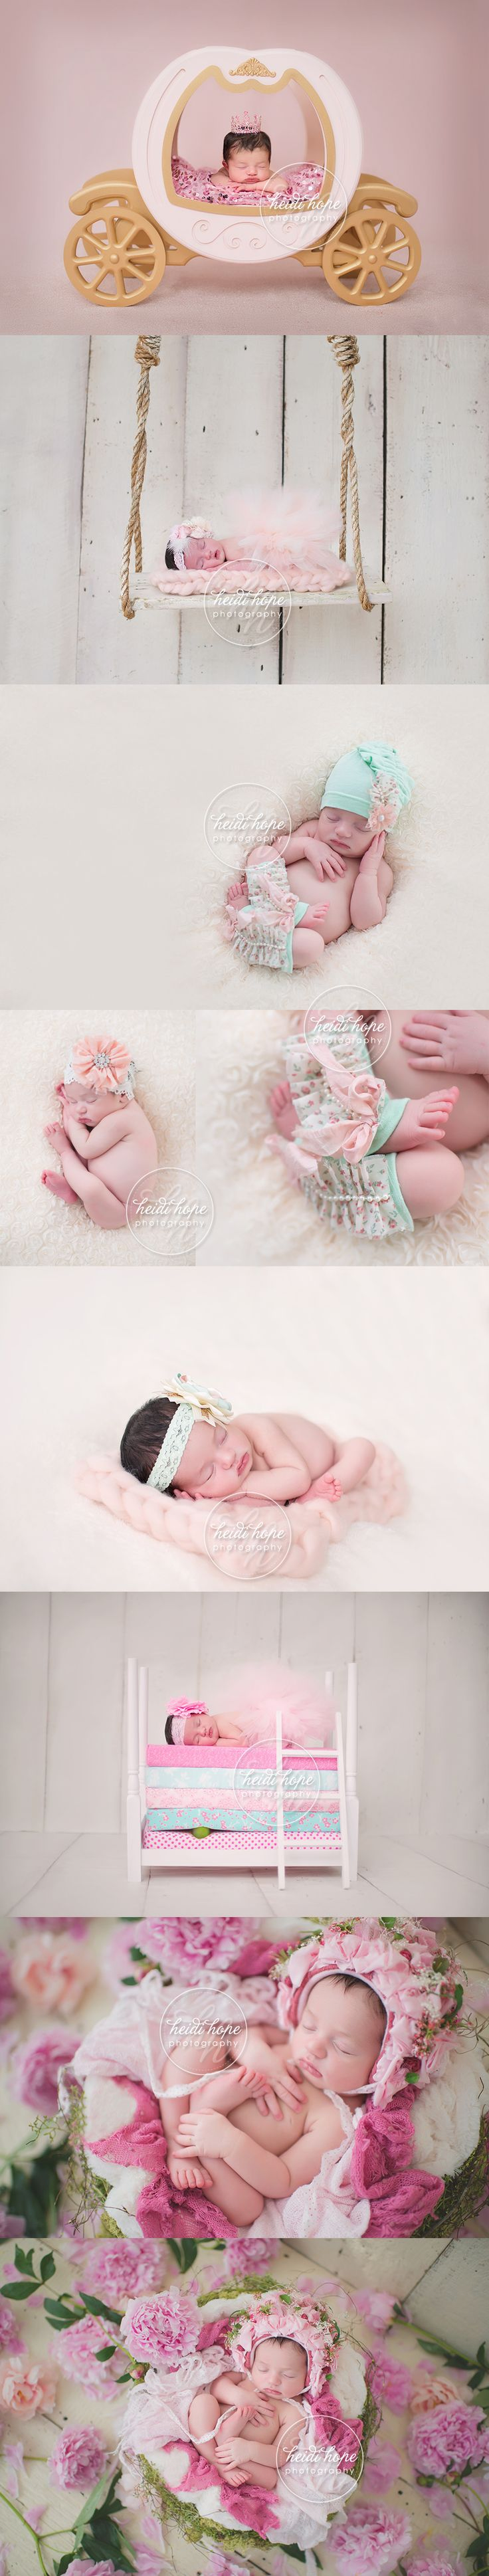 newborn baby girl and flowers princess carraige and sleeping on bed with pea web